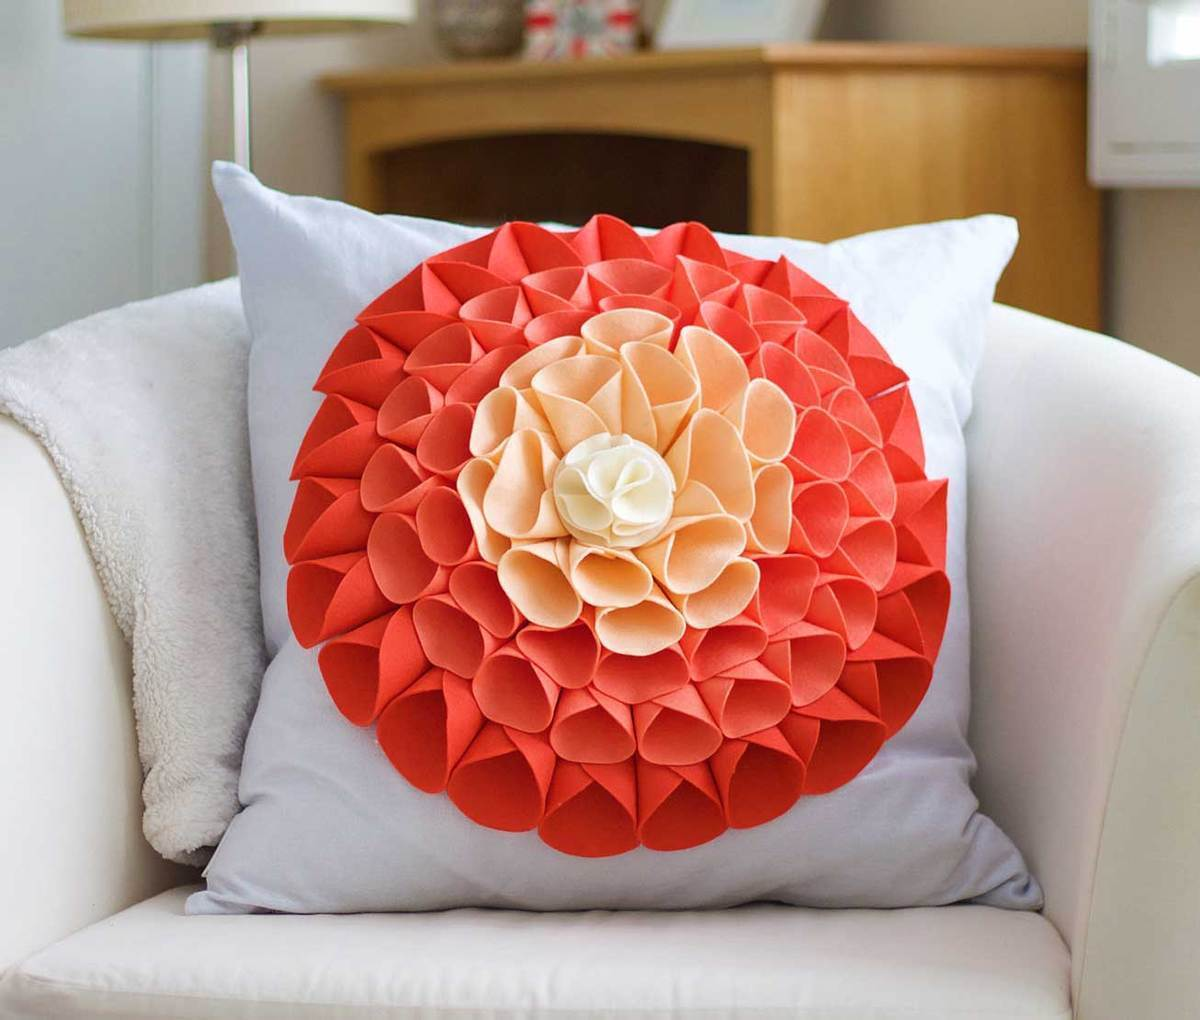 No sew pillow embellishment Pillow design ideas